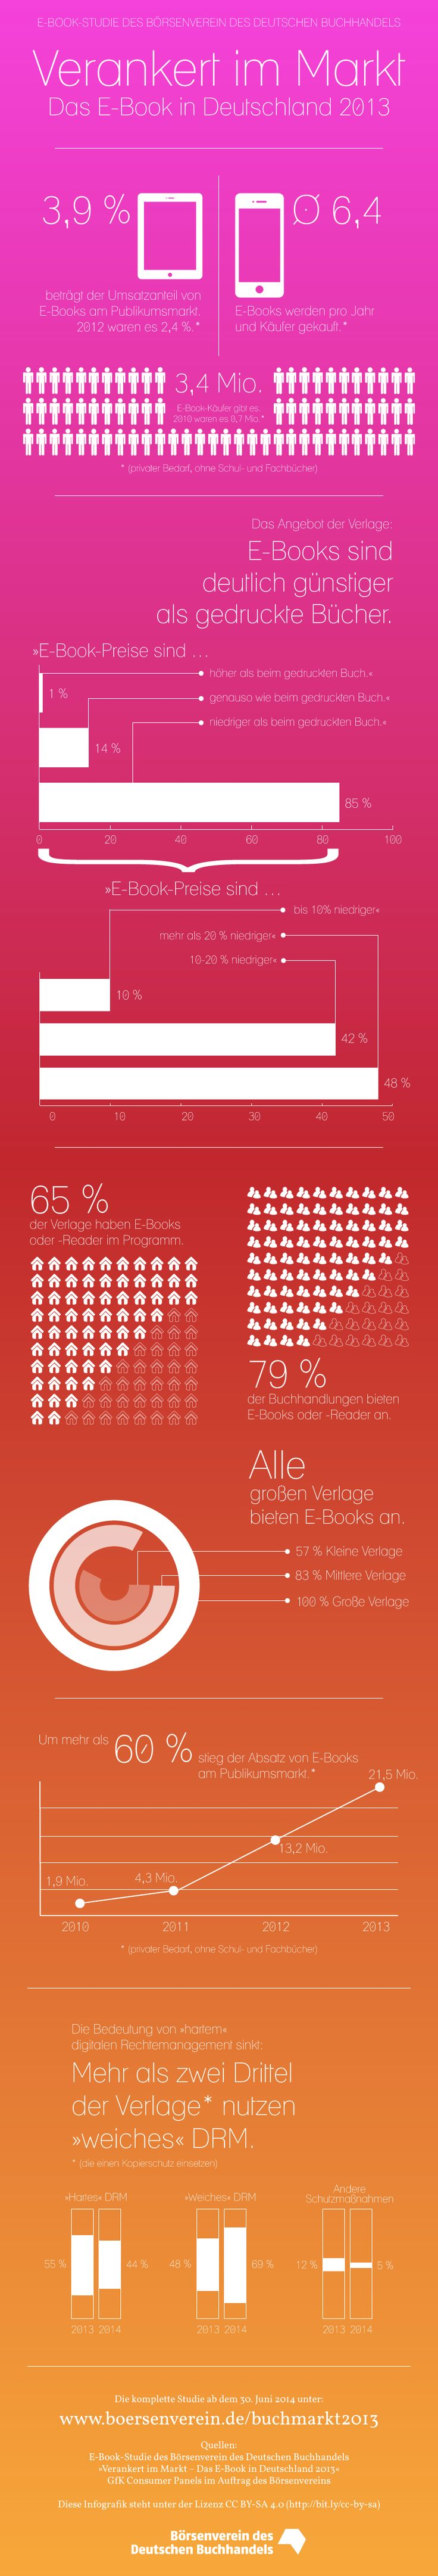 40 best infographics about e books and reading images on pinterest das e book in deutschland 2013 fandeluxe Choice Image